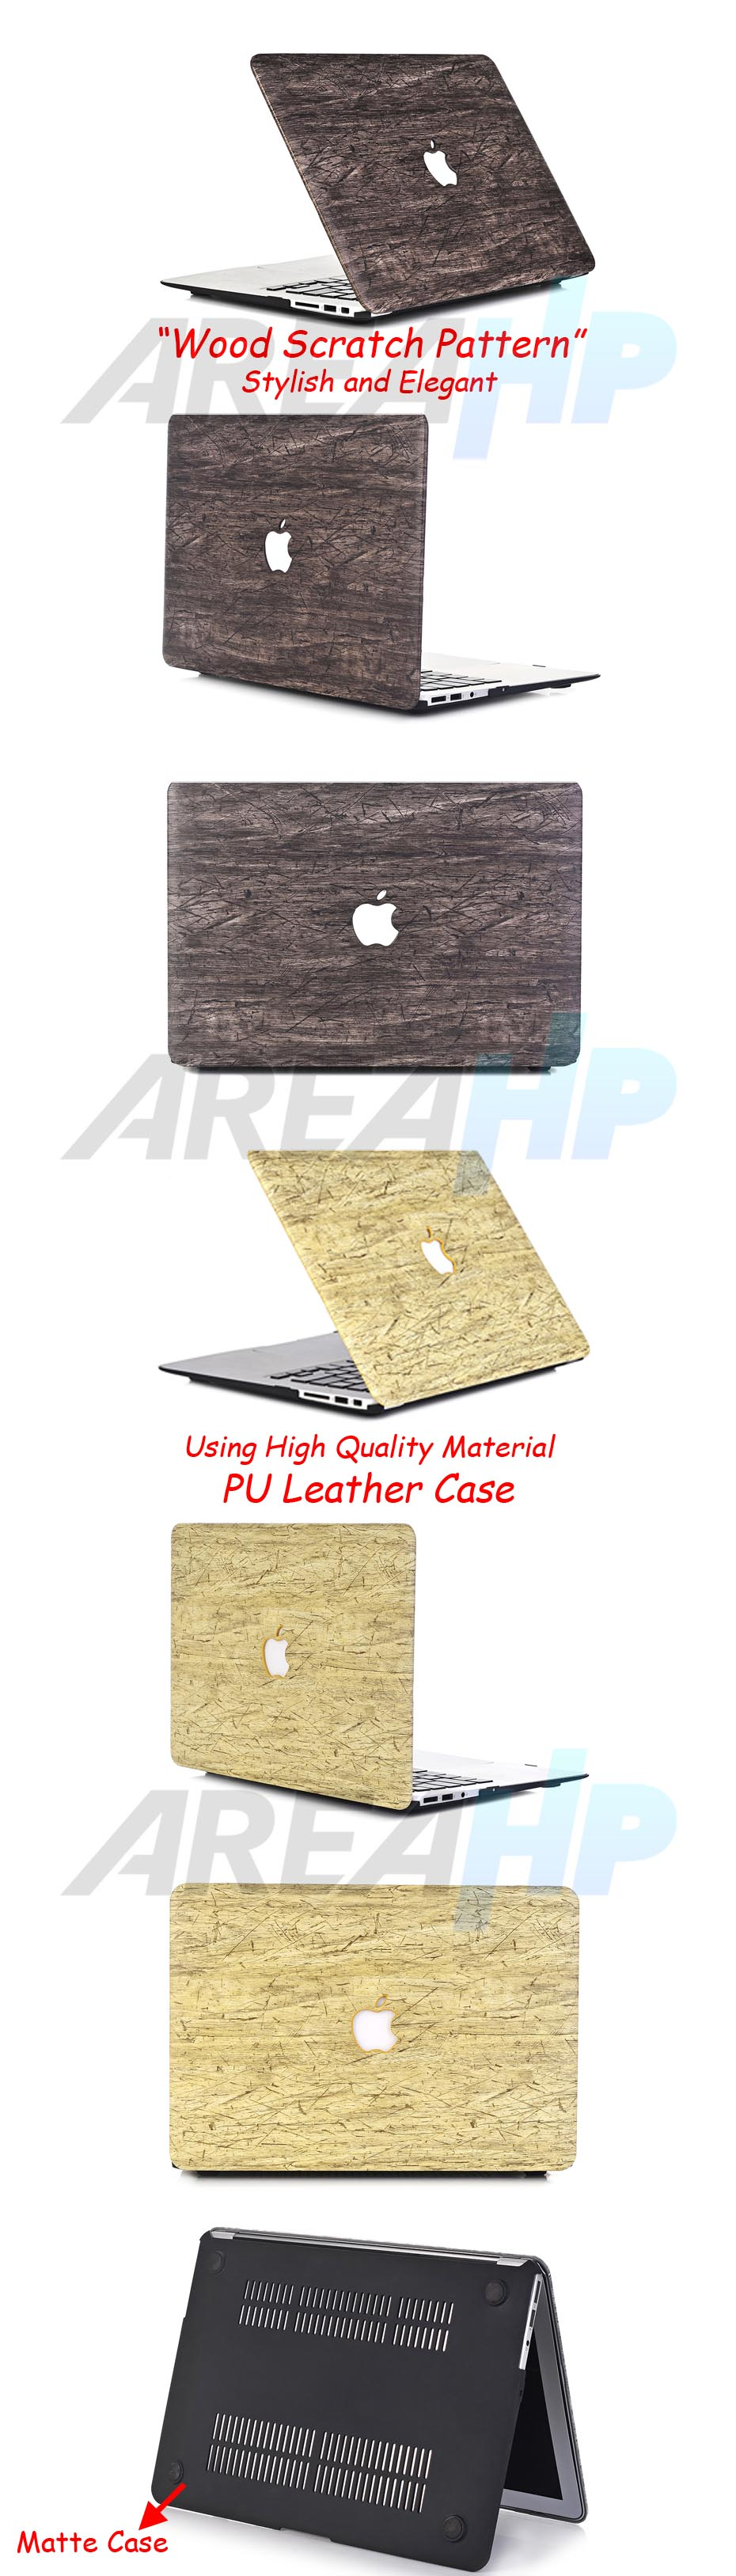 Wood Scratch Patern Case Macbook Overview